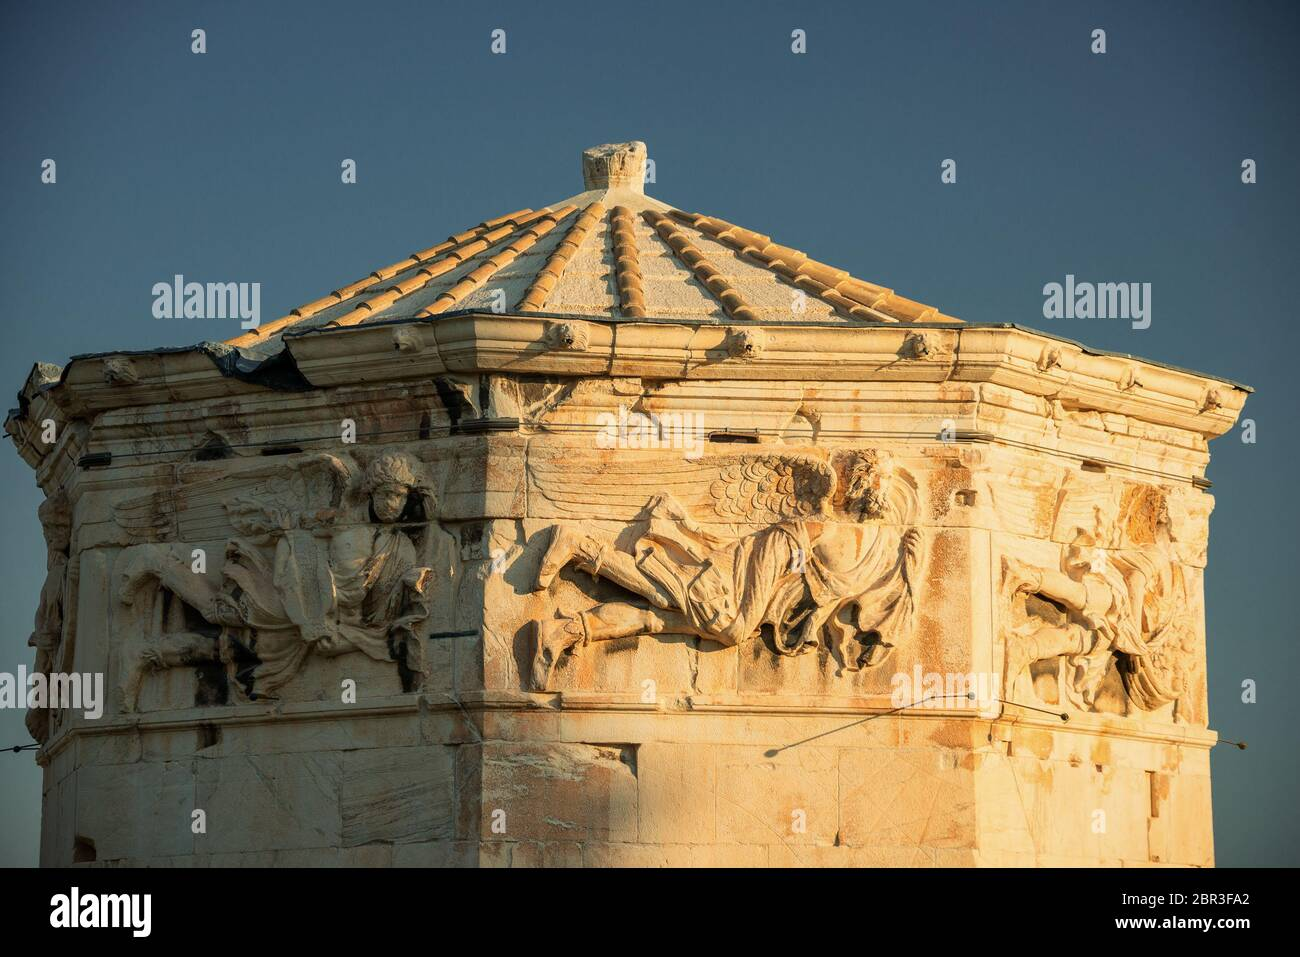 Tower of Winds or Aerides on Roman Agora, Athens, Greece. It is one of the main landmarks of Athens. Stock Photo